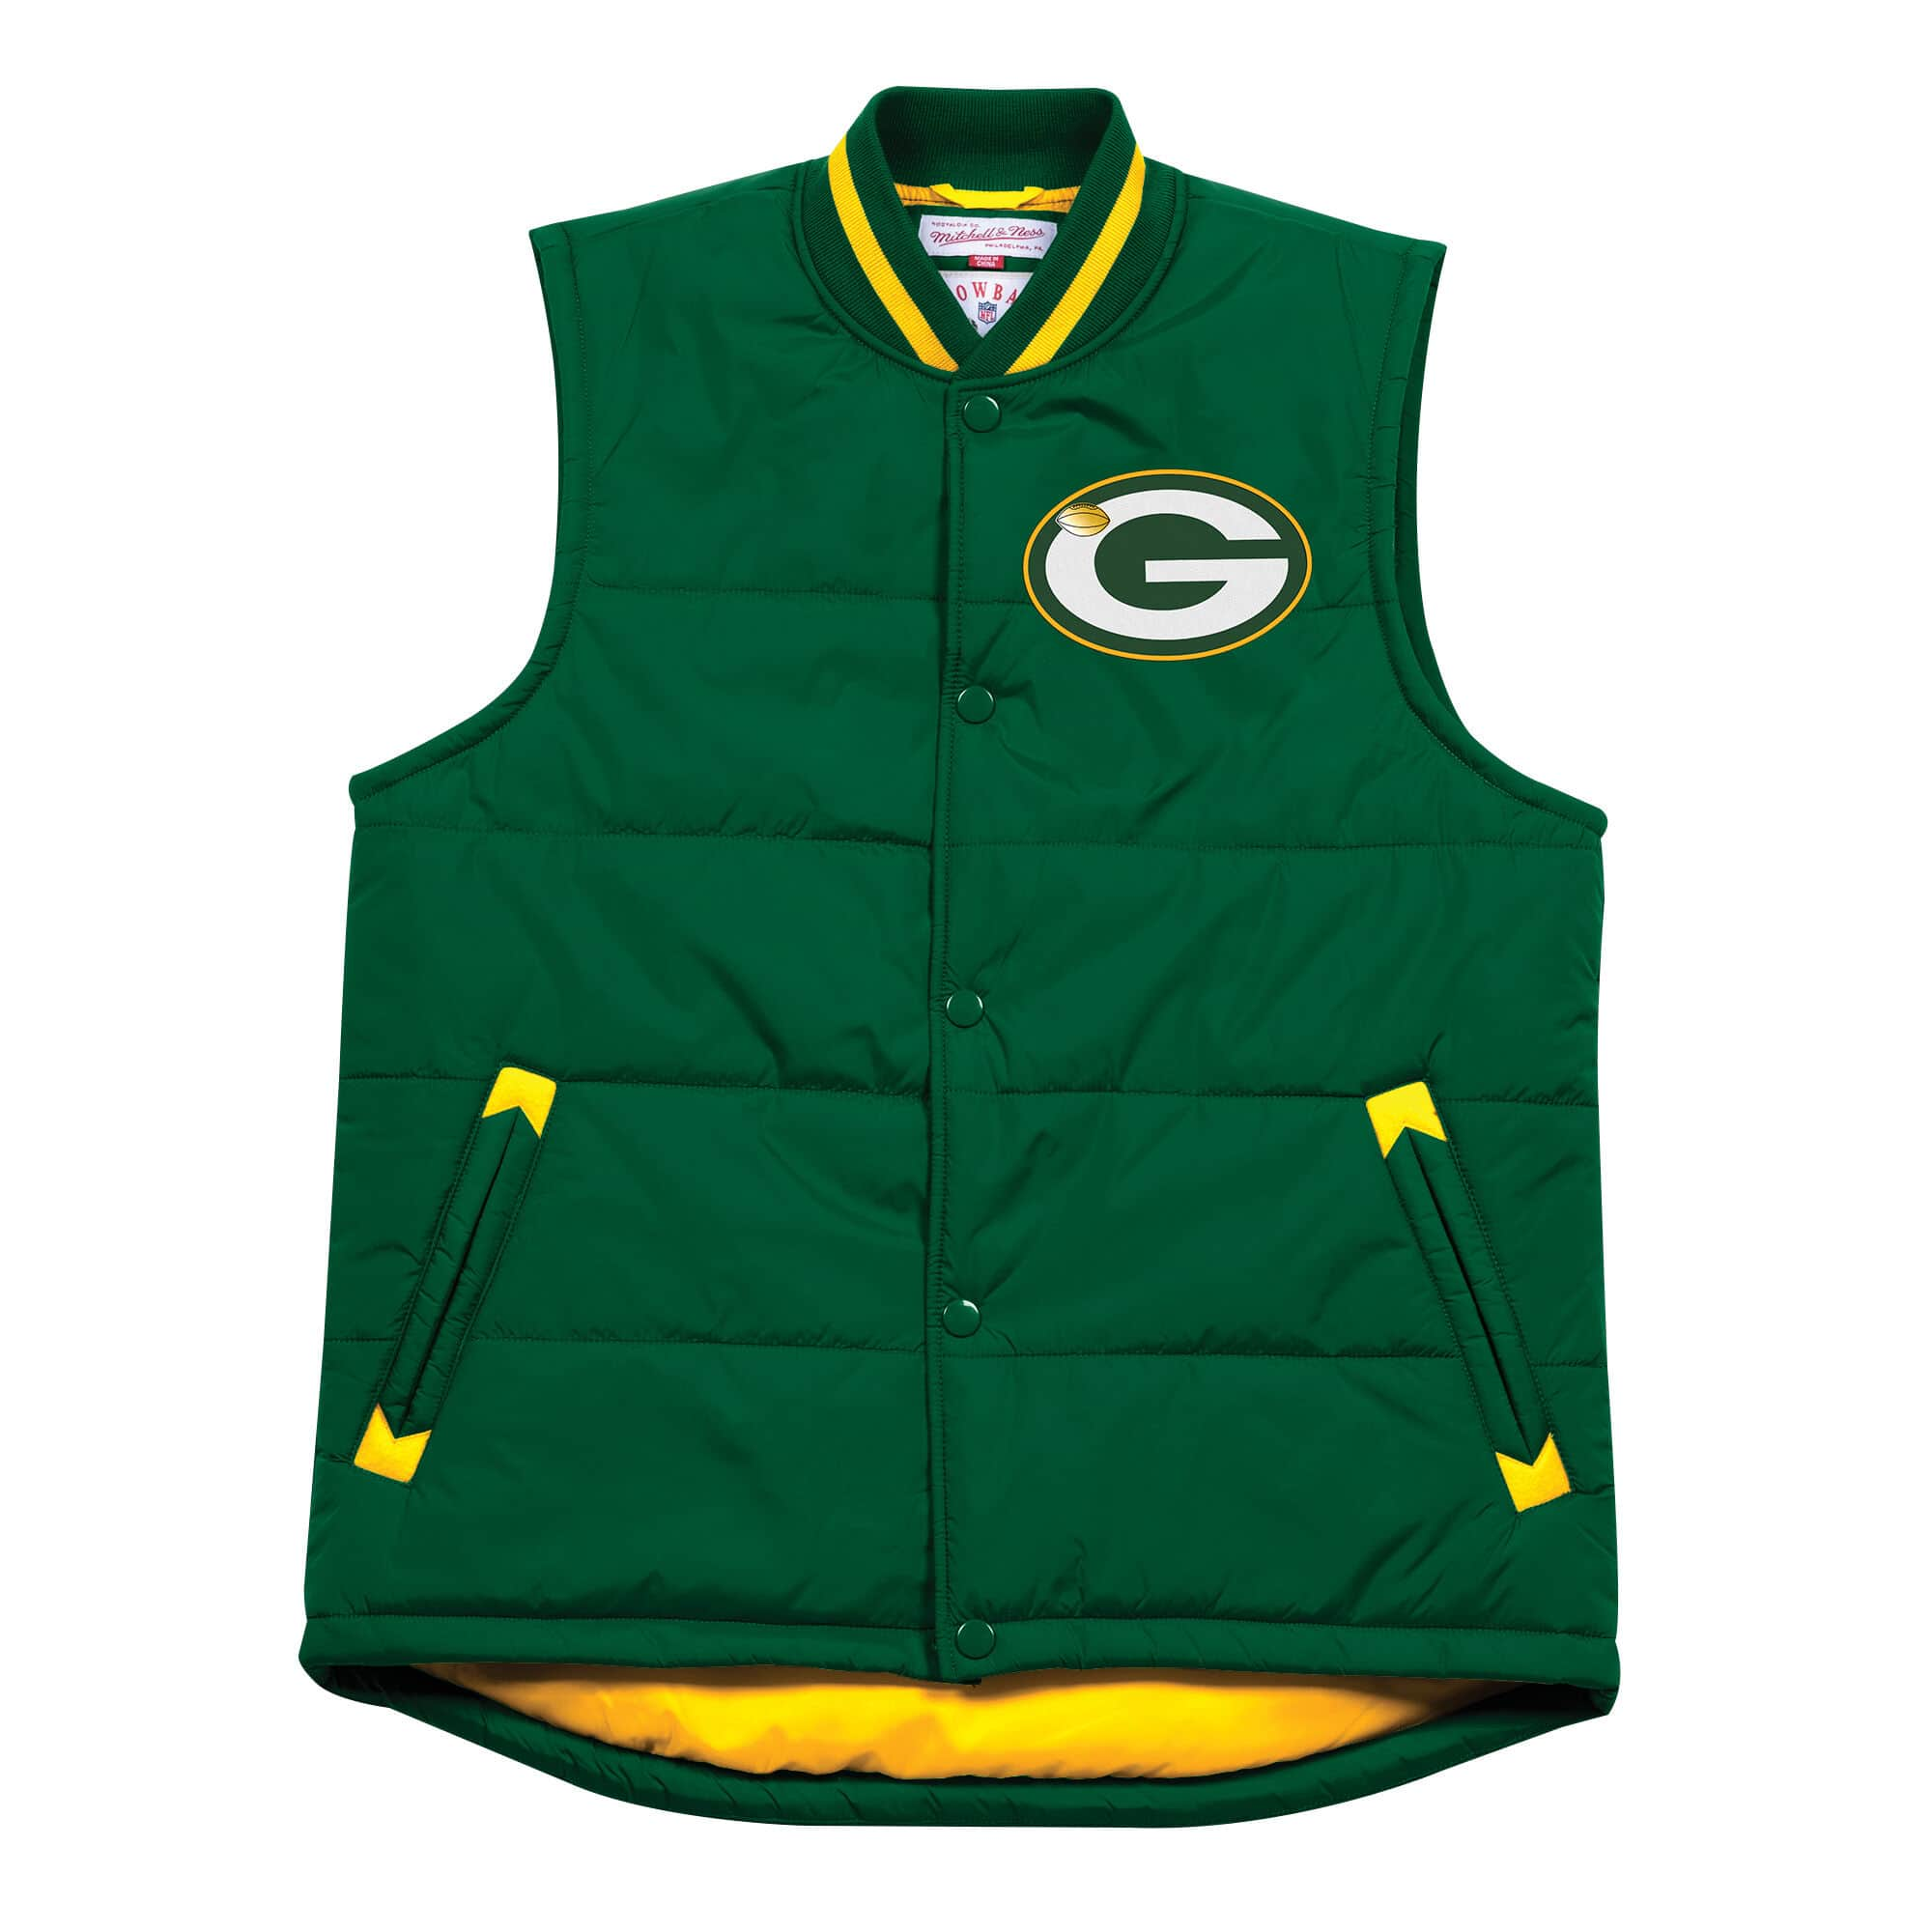 Amazing Catch Vest Green Bay Packers